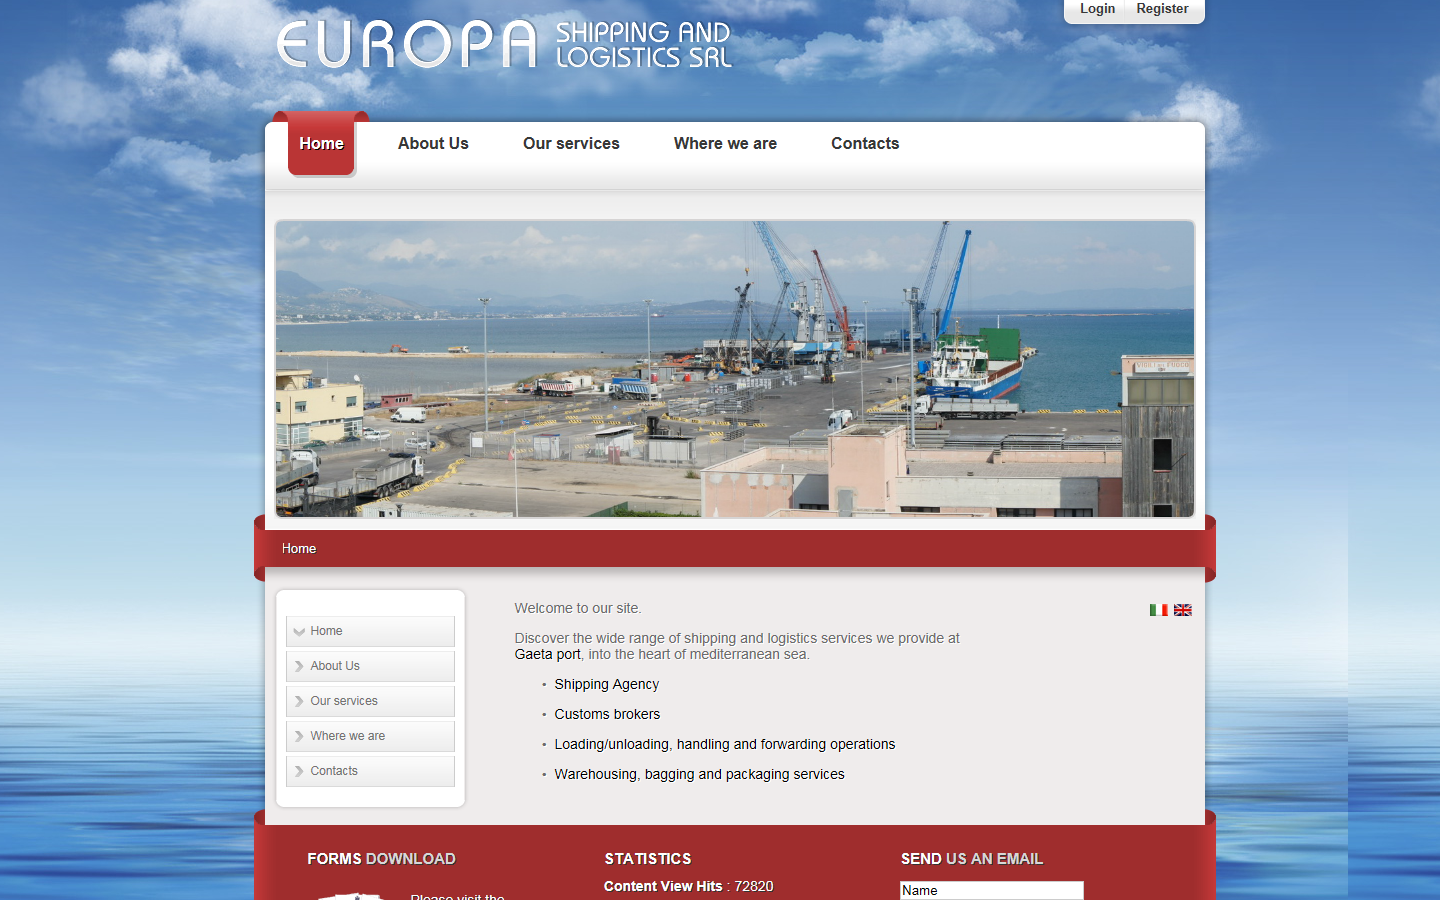 Europa Shipping and Logistics